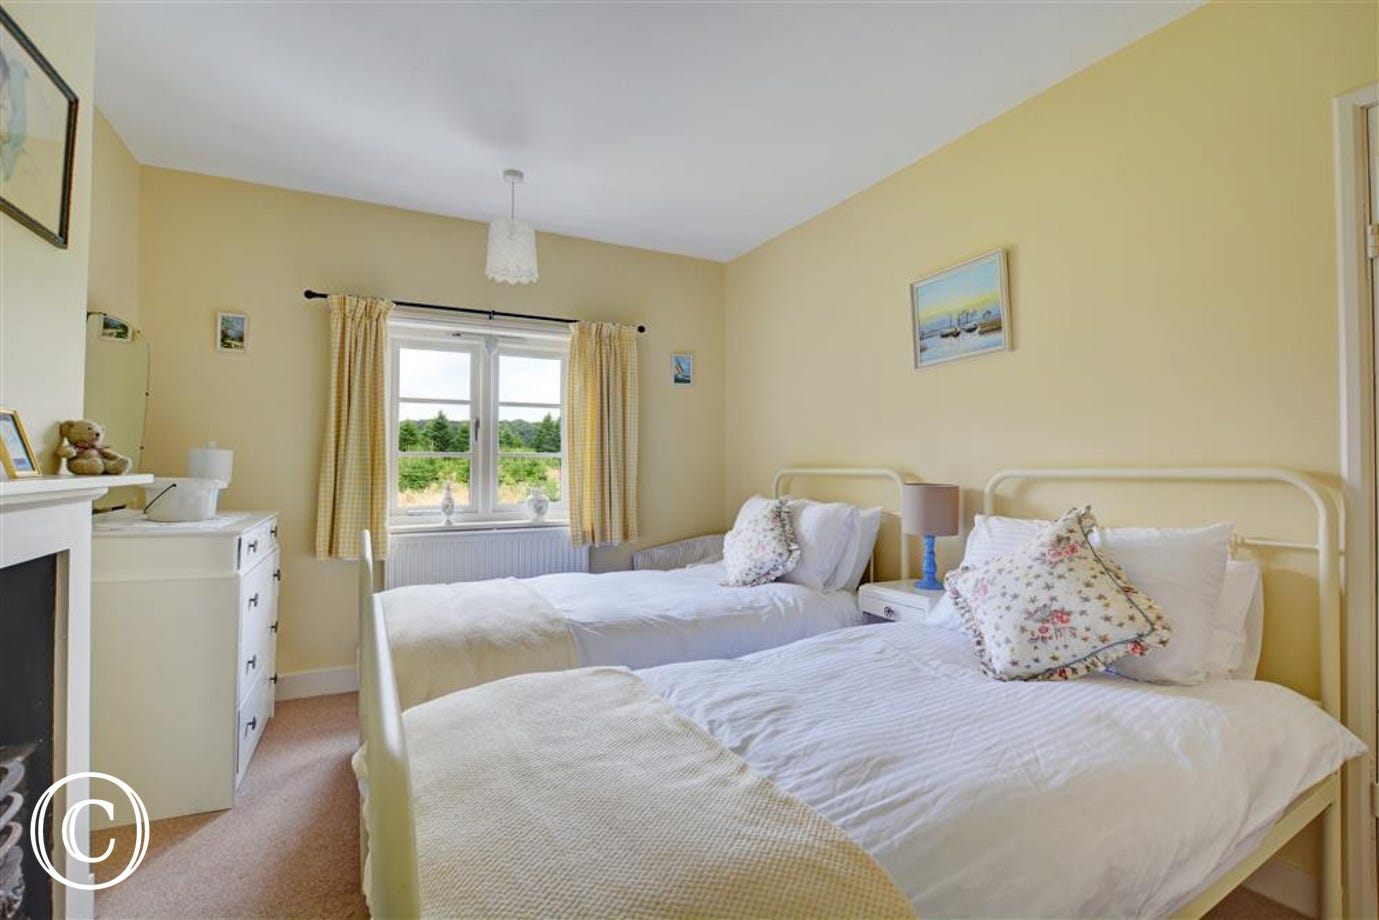 Bedroom three is a light and airy room with twin beds